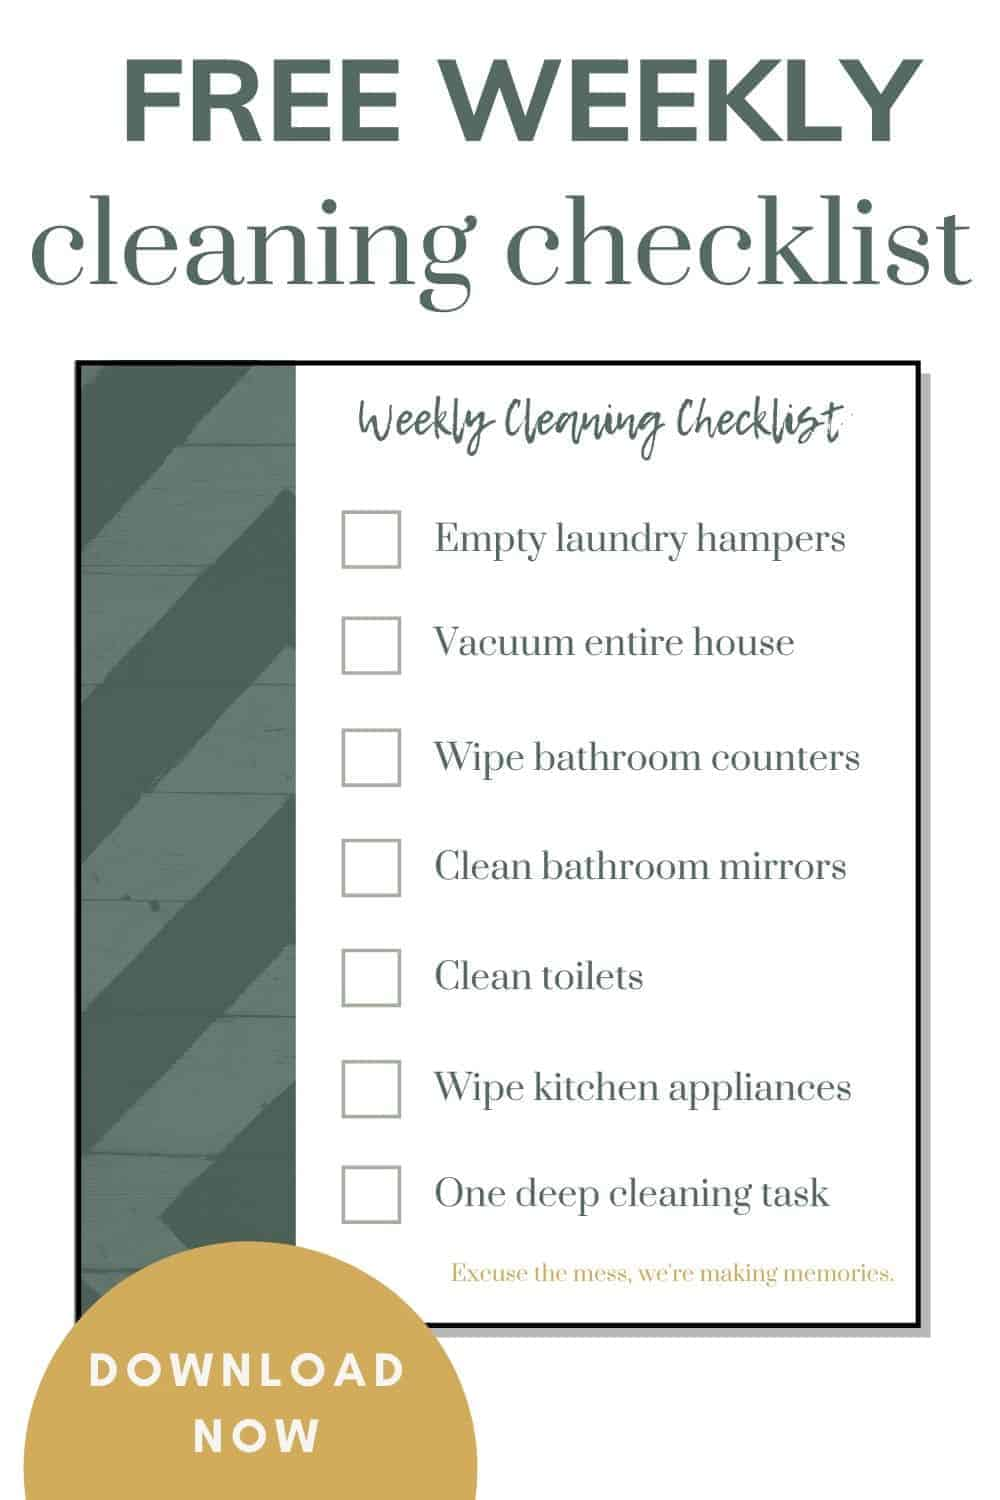 shows a weekly cleaning checklist with overlay text that says free weekly cleaning checklist and a download now button